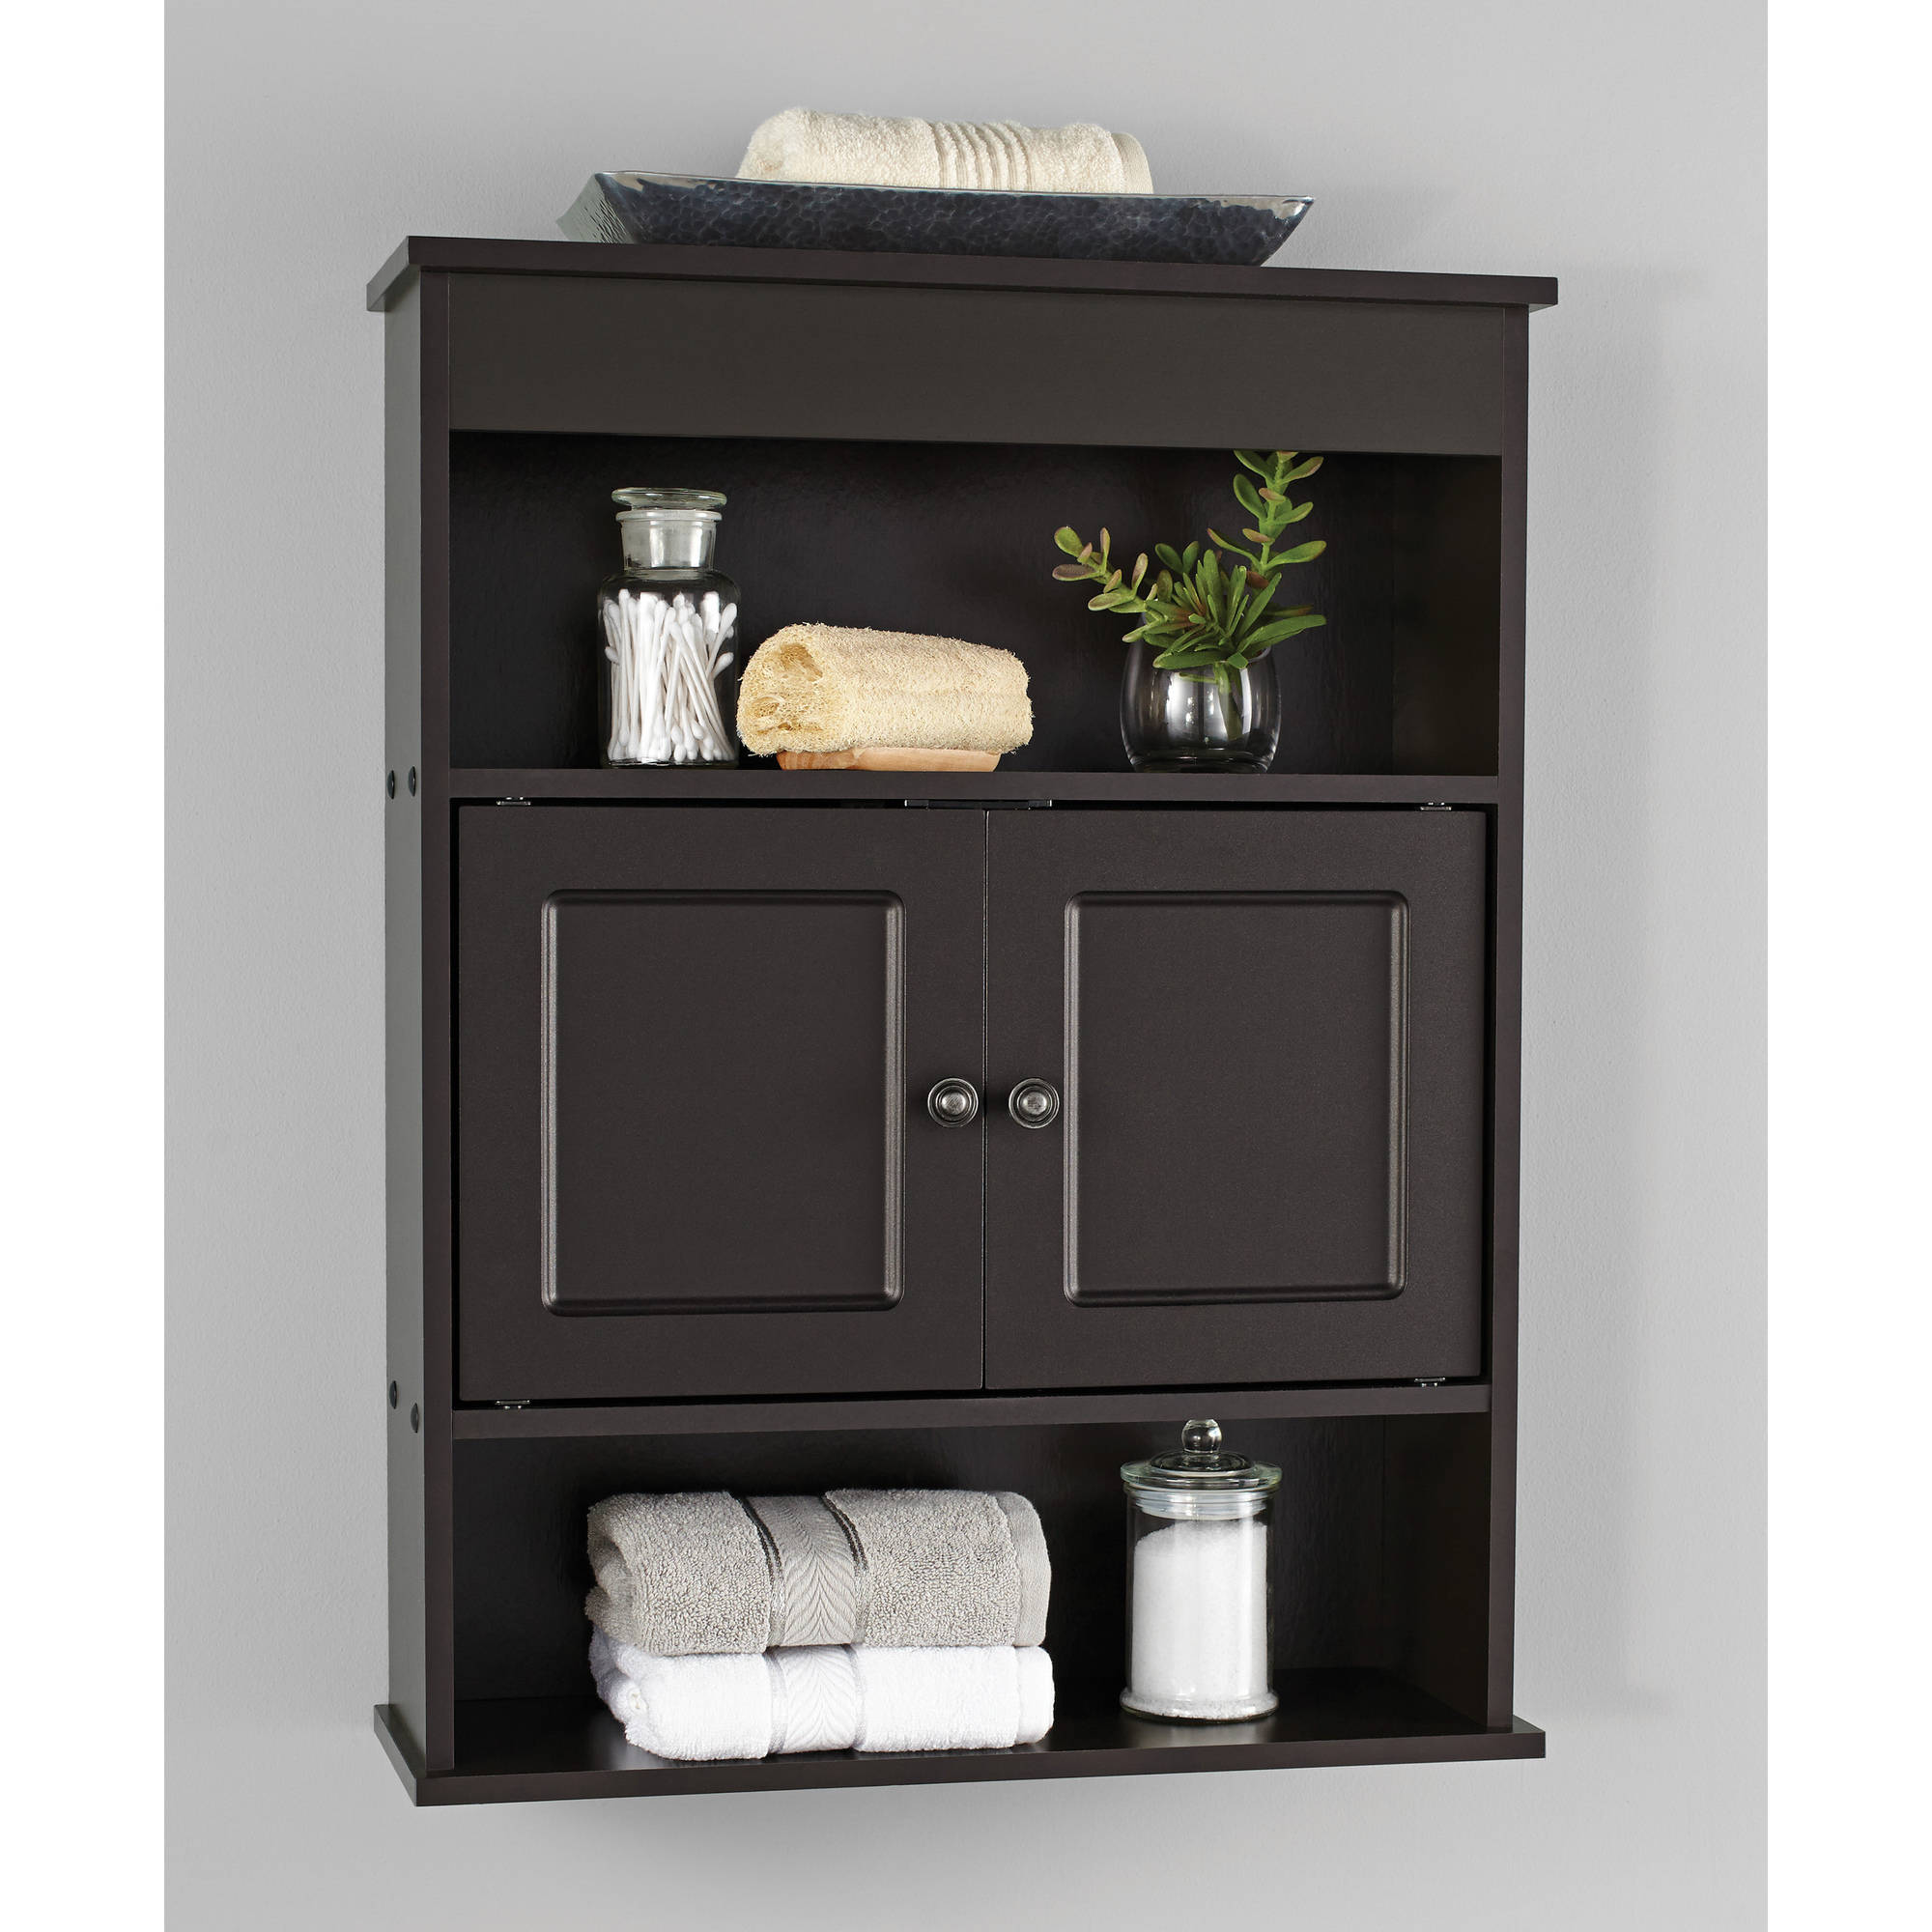 Bathroom wall cabinets for managing space